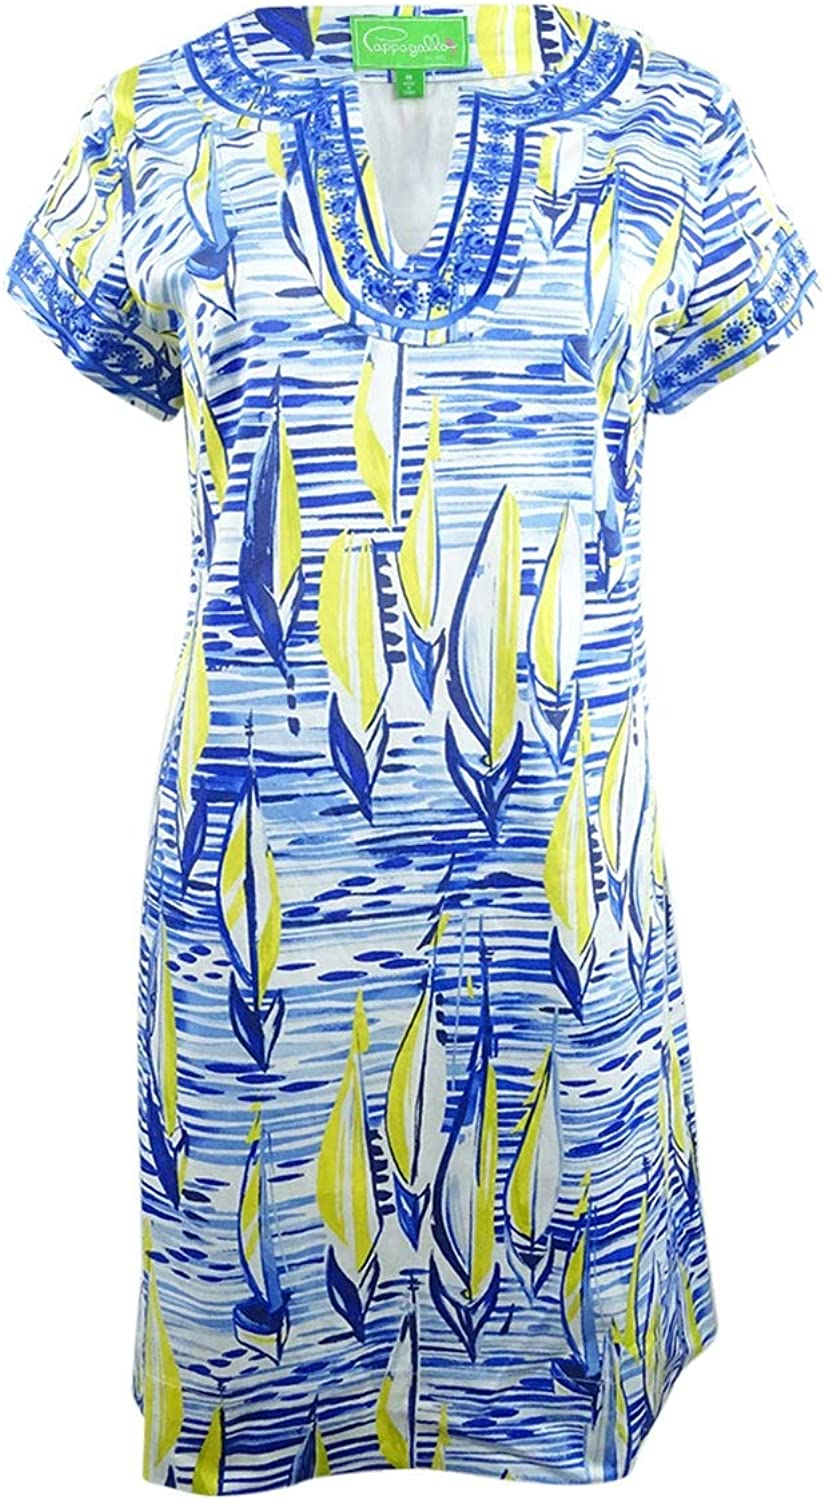 Pappagallo Women& 39;s Printed SplitNeck Shift Dress (8, Lagoon Multi) bluees